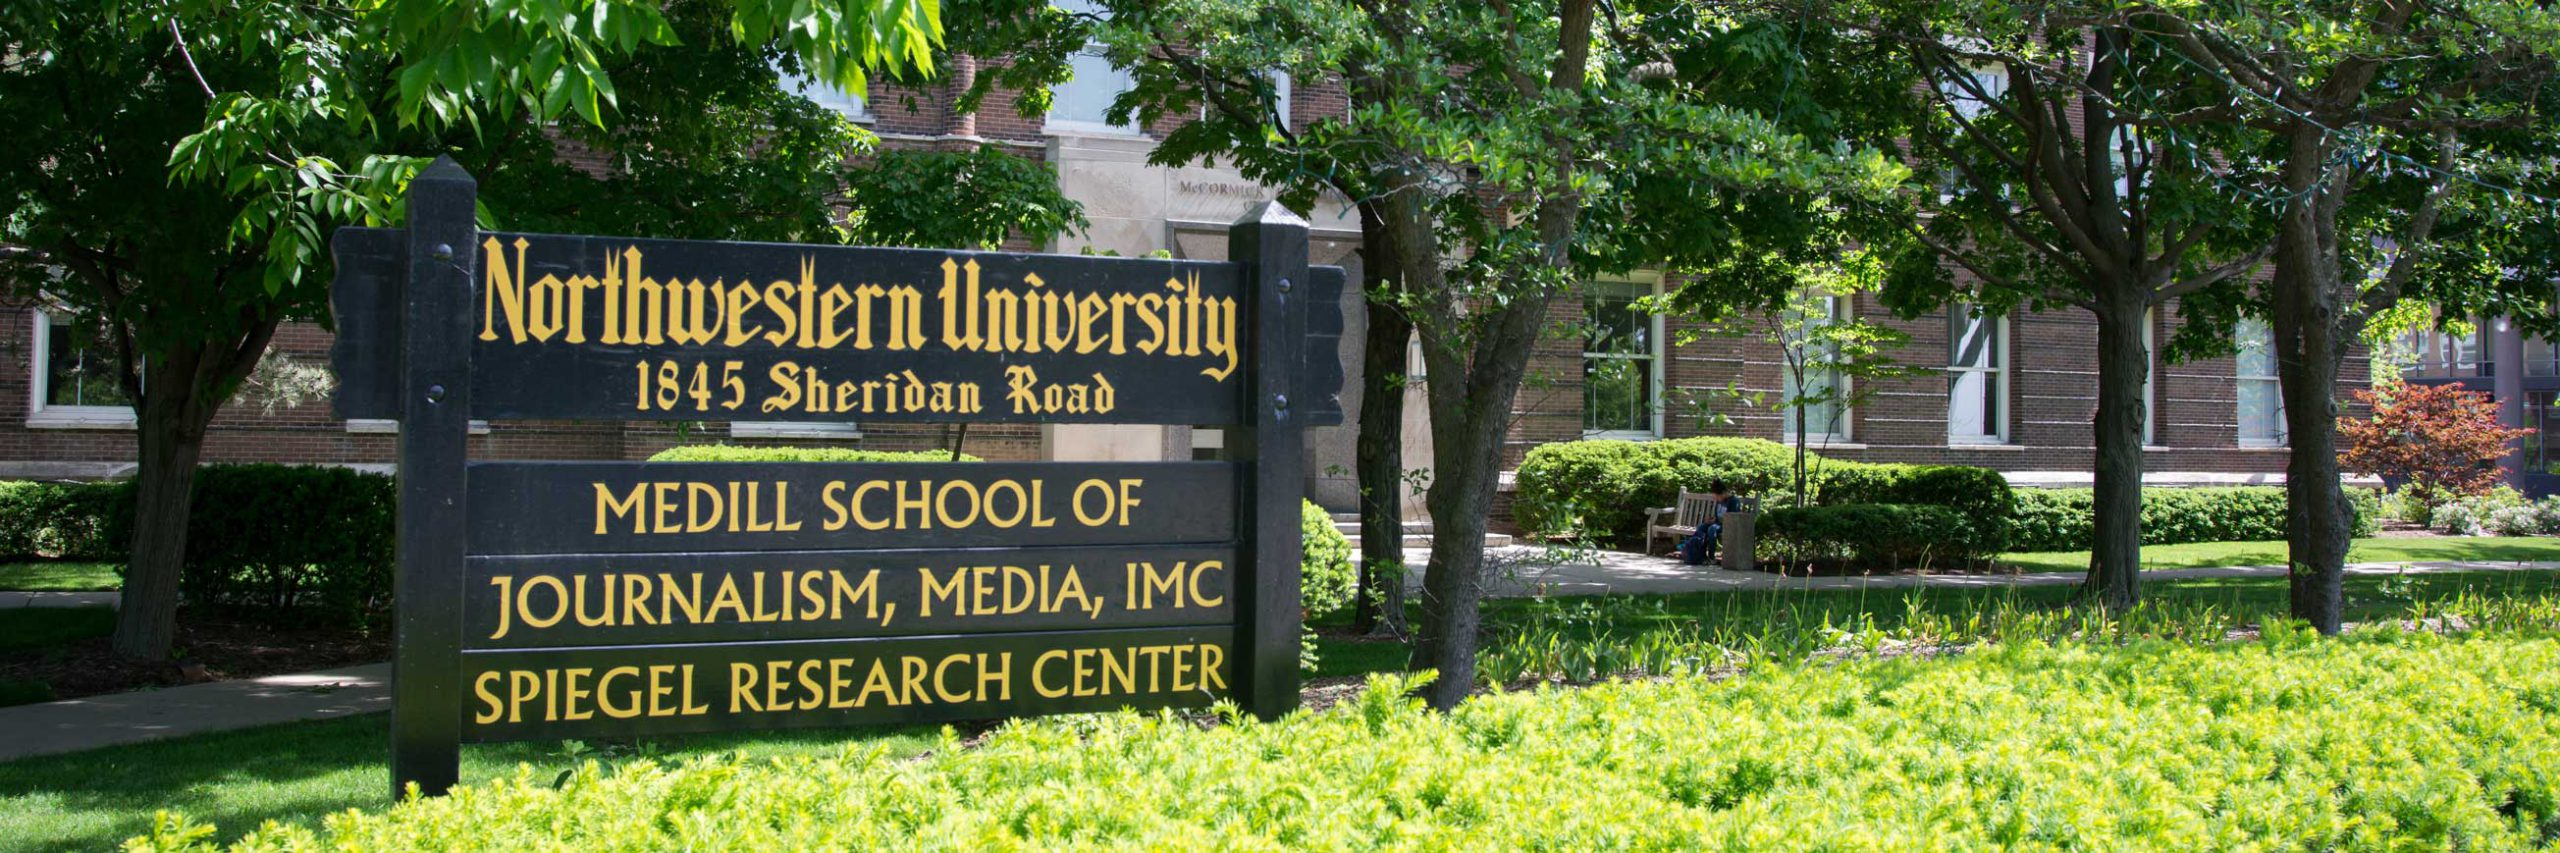 """A sign outside of a brick building. The sign reads """"Northwestern University, 1845 Sheridan Road, Medill School of Journalism, Media, IMC, Spiegel Research Center"""""""